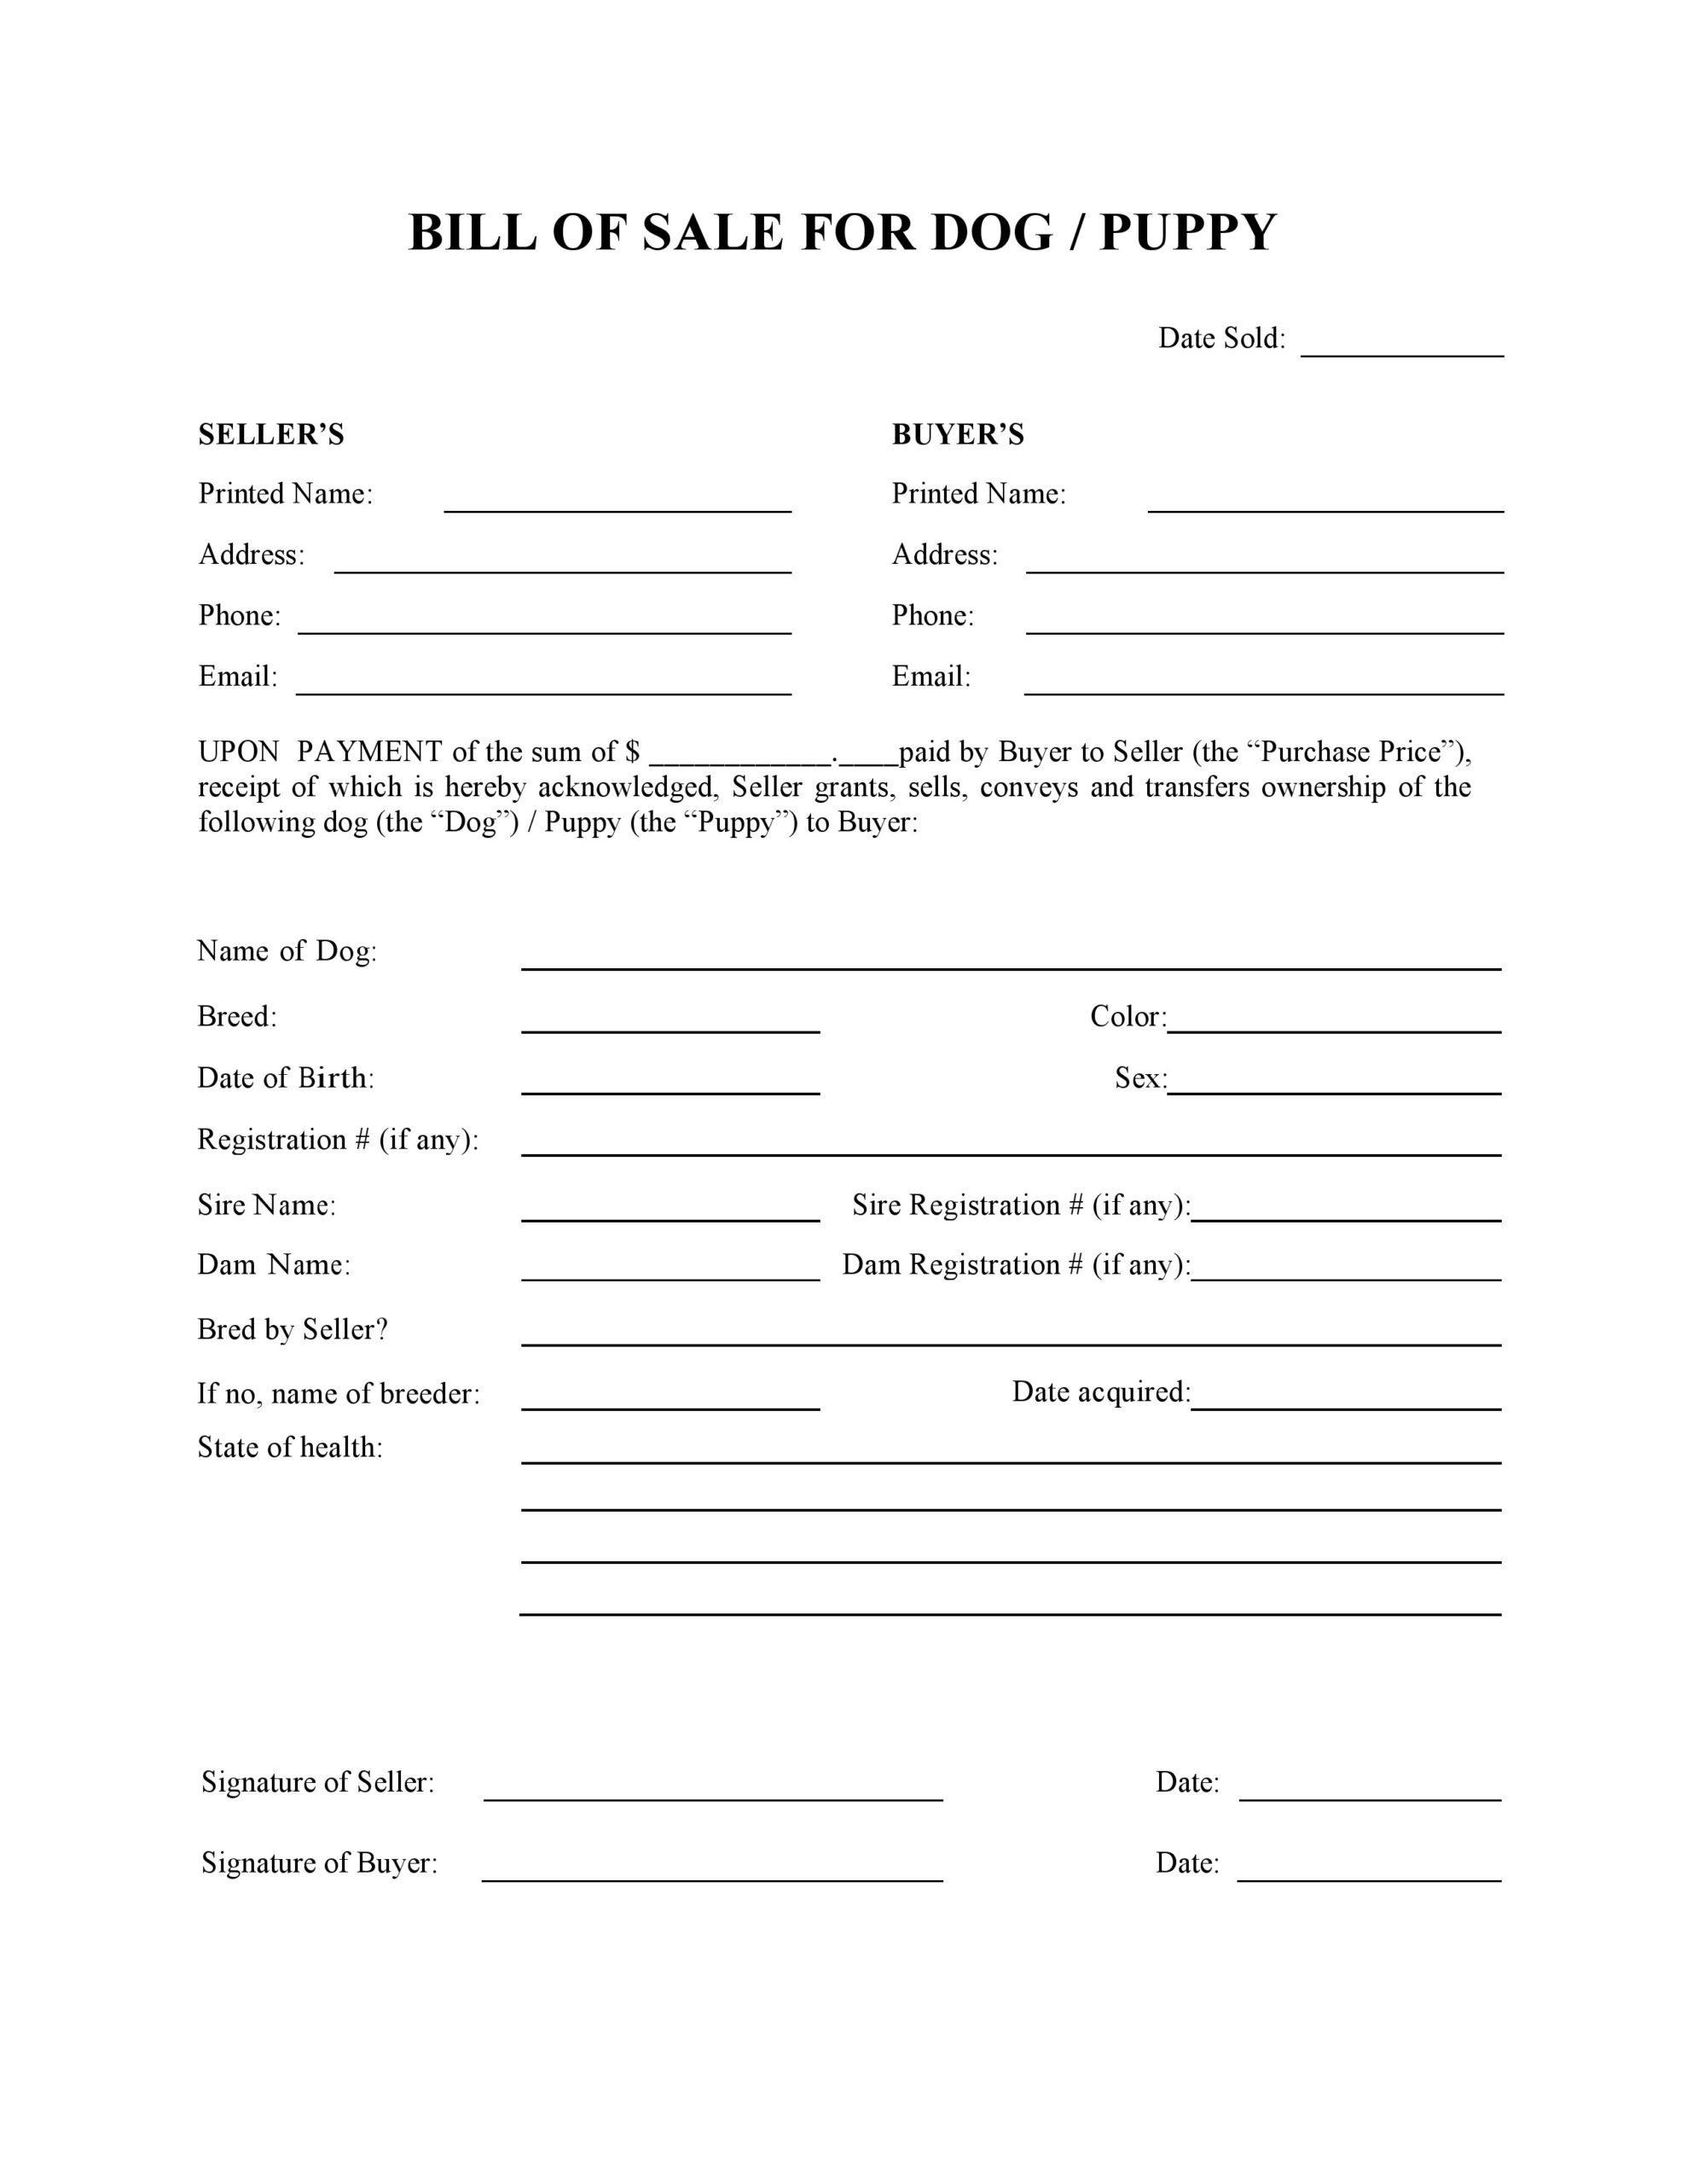 Free Dog Or Puppy Bill Of Sale Form | Pdf | Word | Do It Yourself Forms